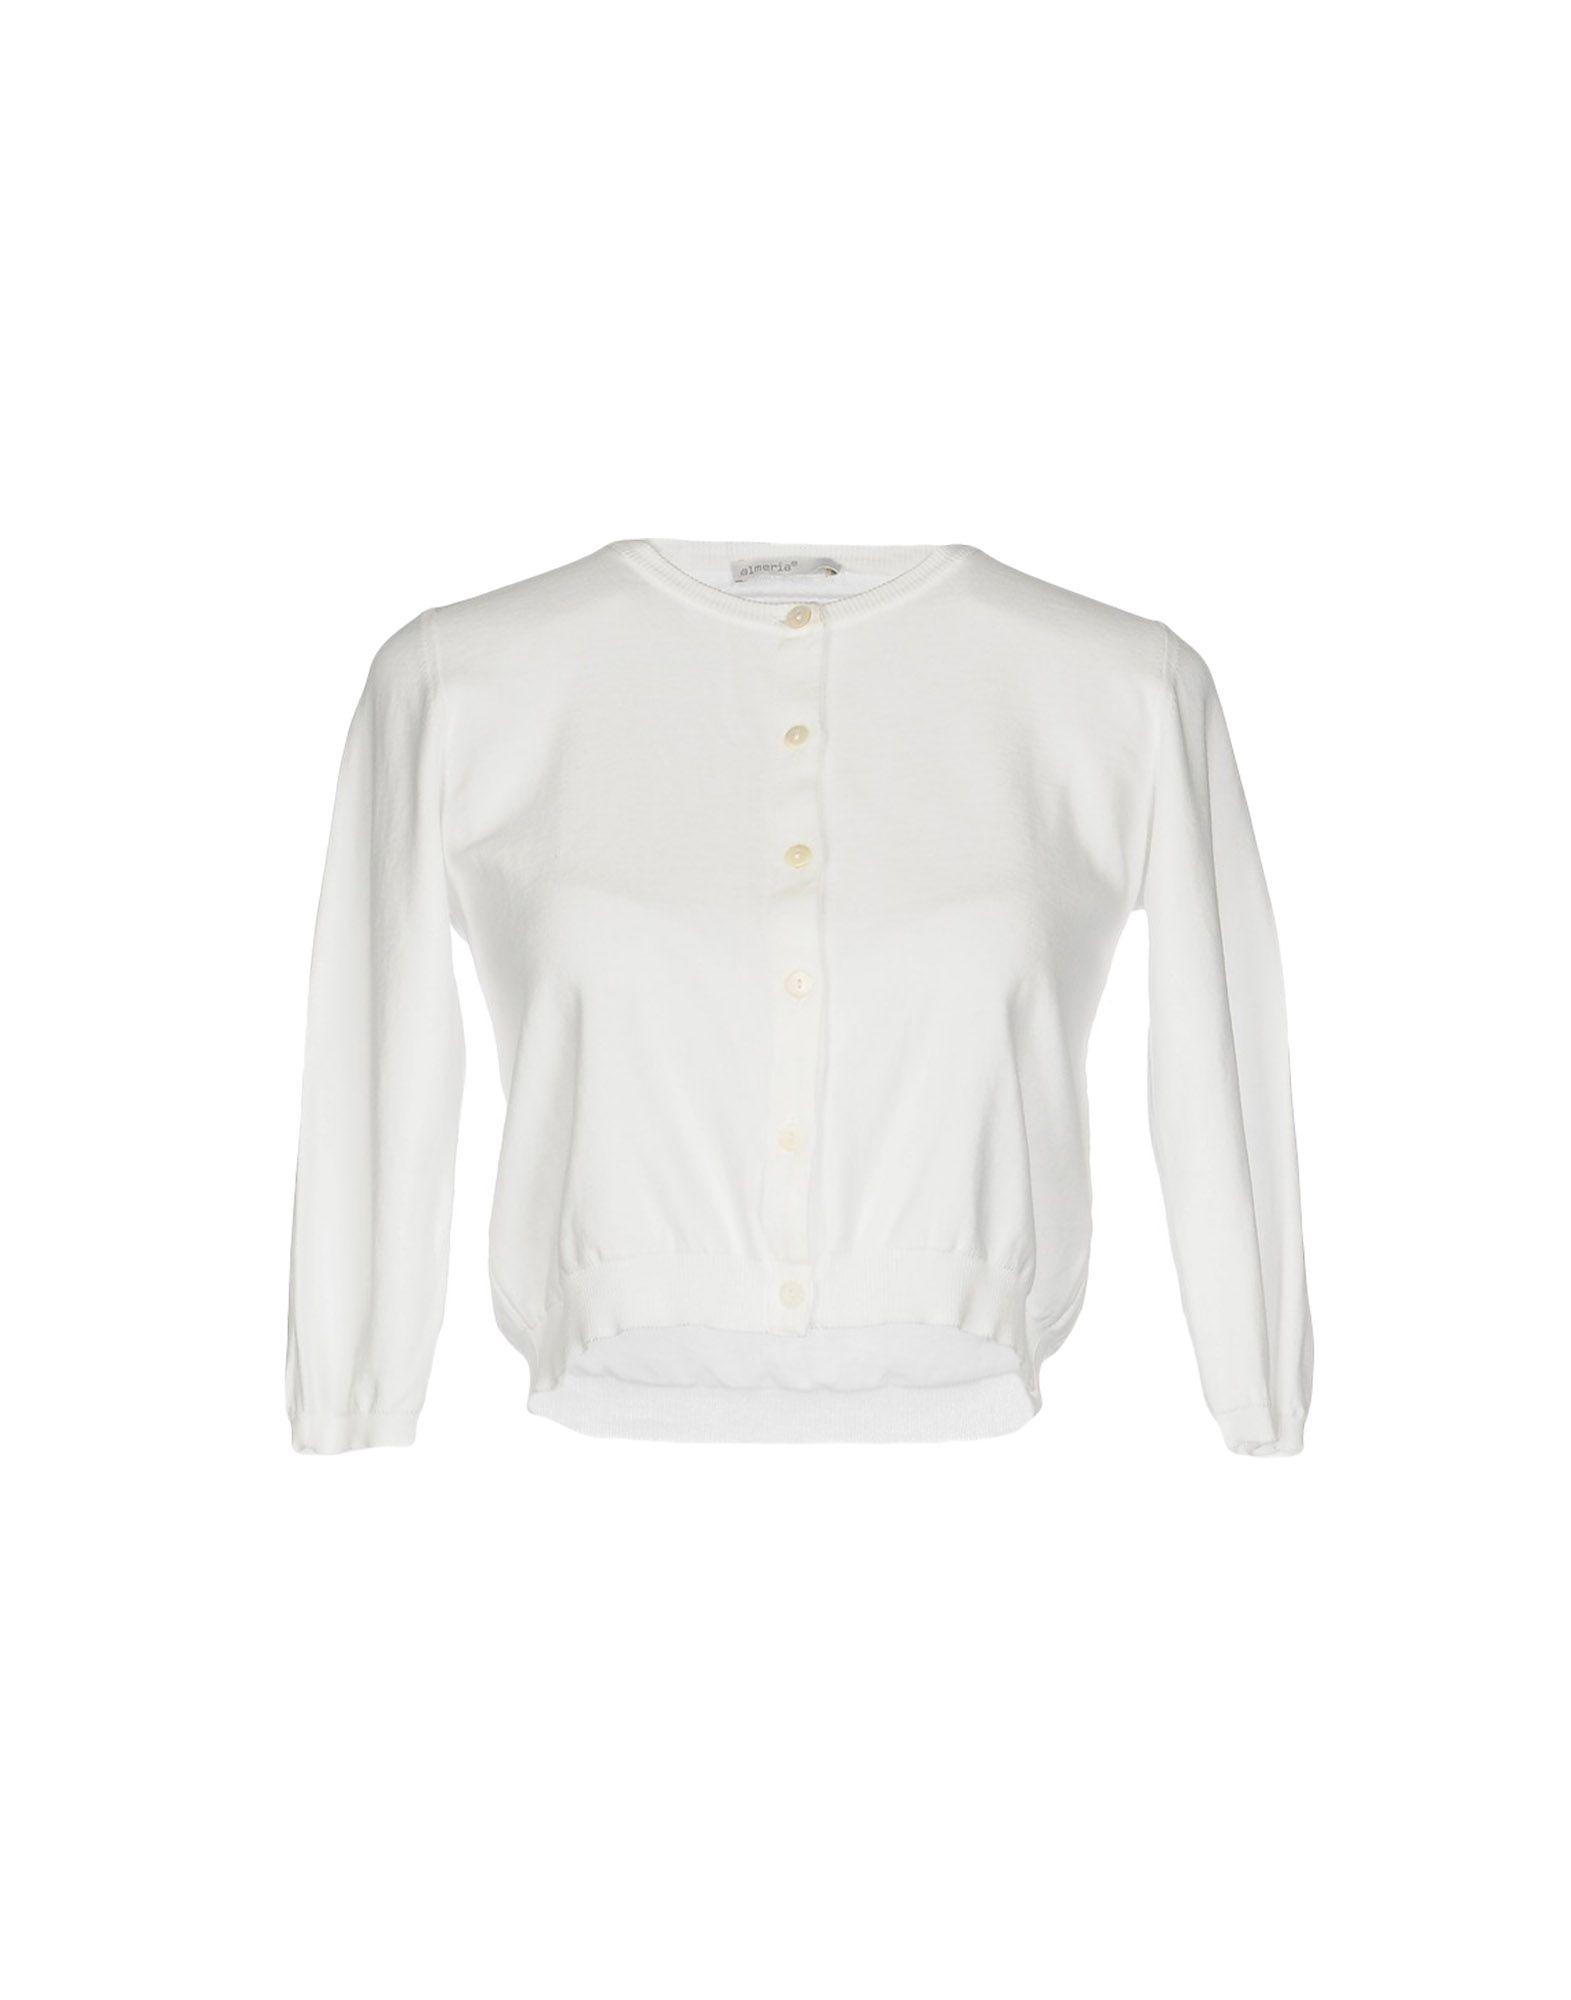 KNITWEAR - Cardigans Almeria Official Site Cheap Online Cheap Sale Shop Offer Low Price Sale Fashionable Cheap Price Free Shipping Shop uvbOwaMTb